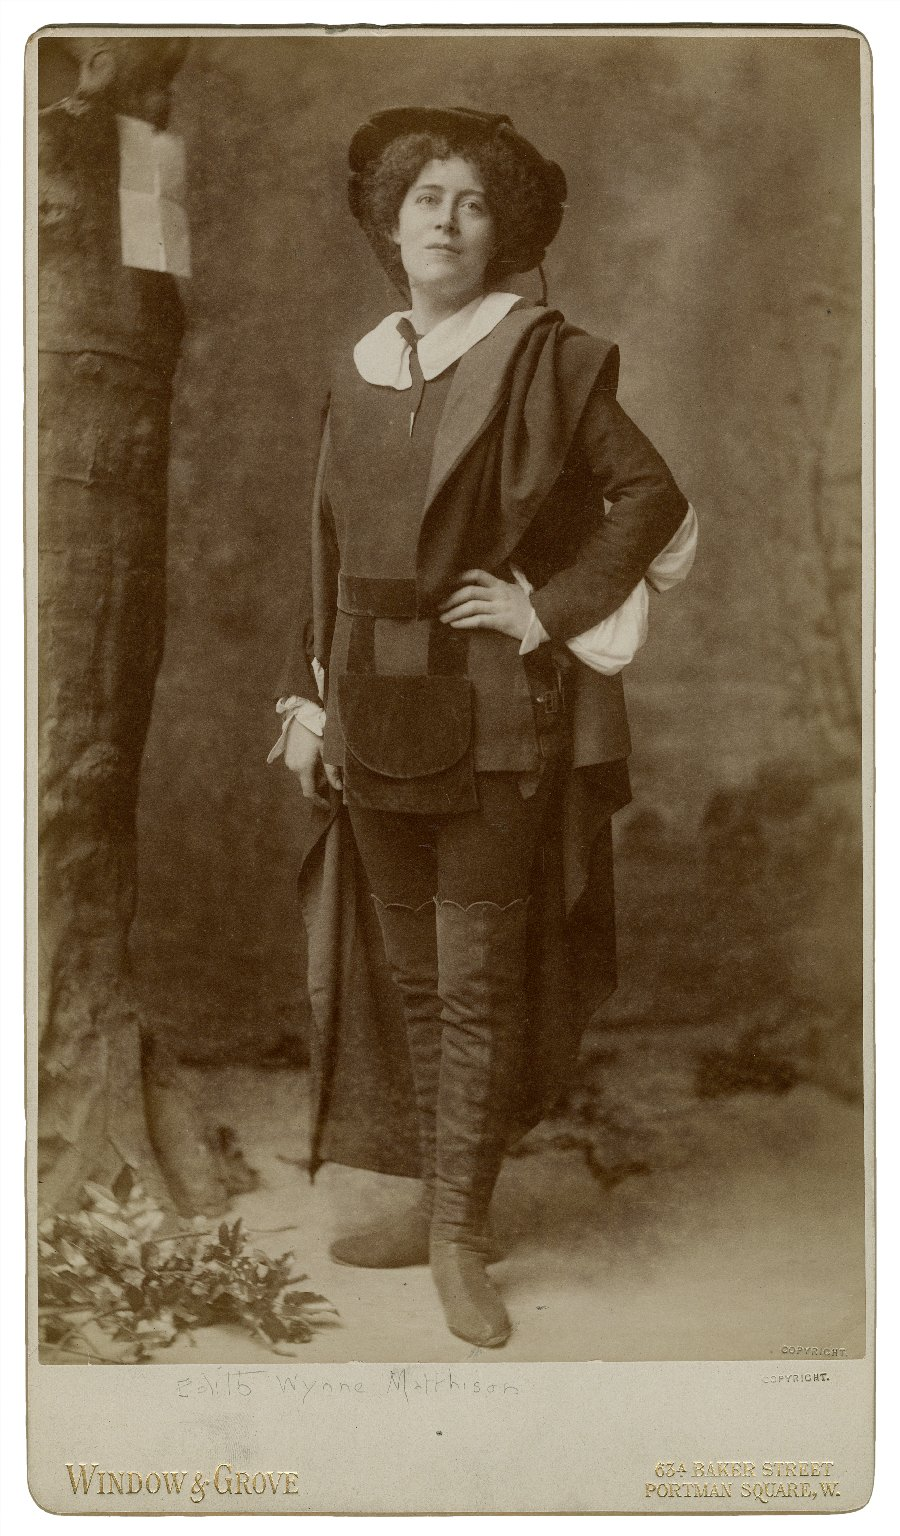 Edith Wynne Matthison [as Rosalind in Shakespeare's As you like it] [graphic] / Window & Grove.